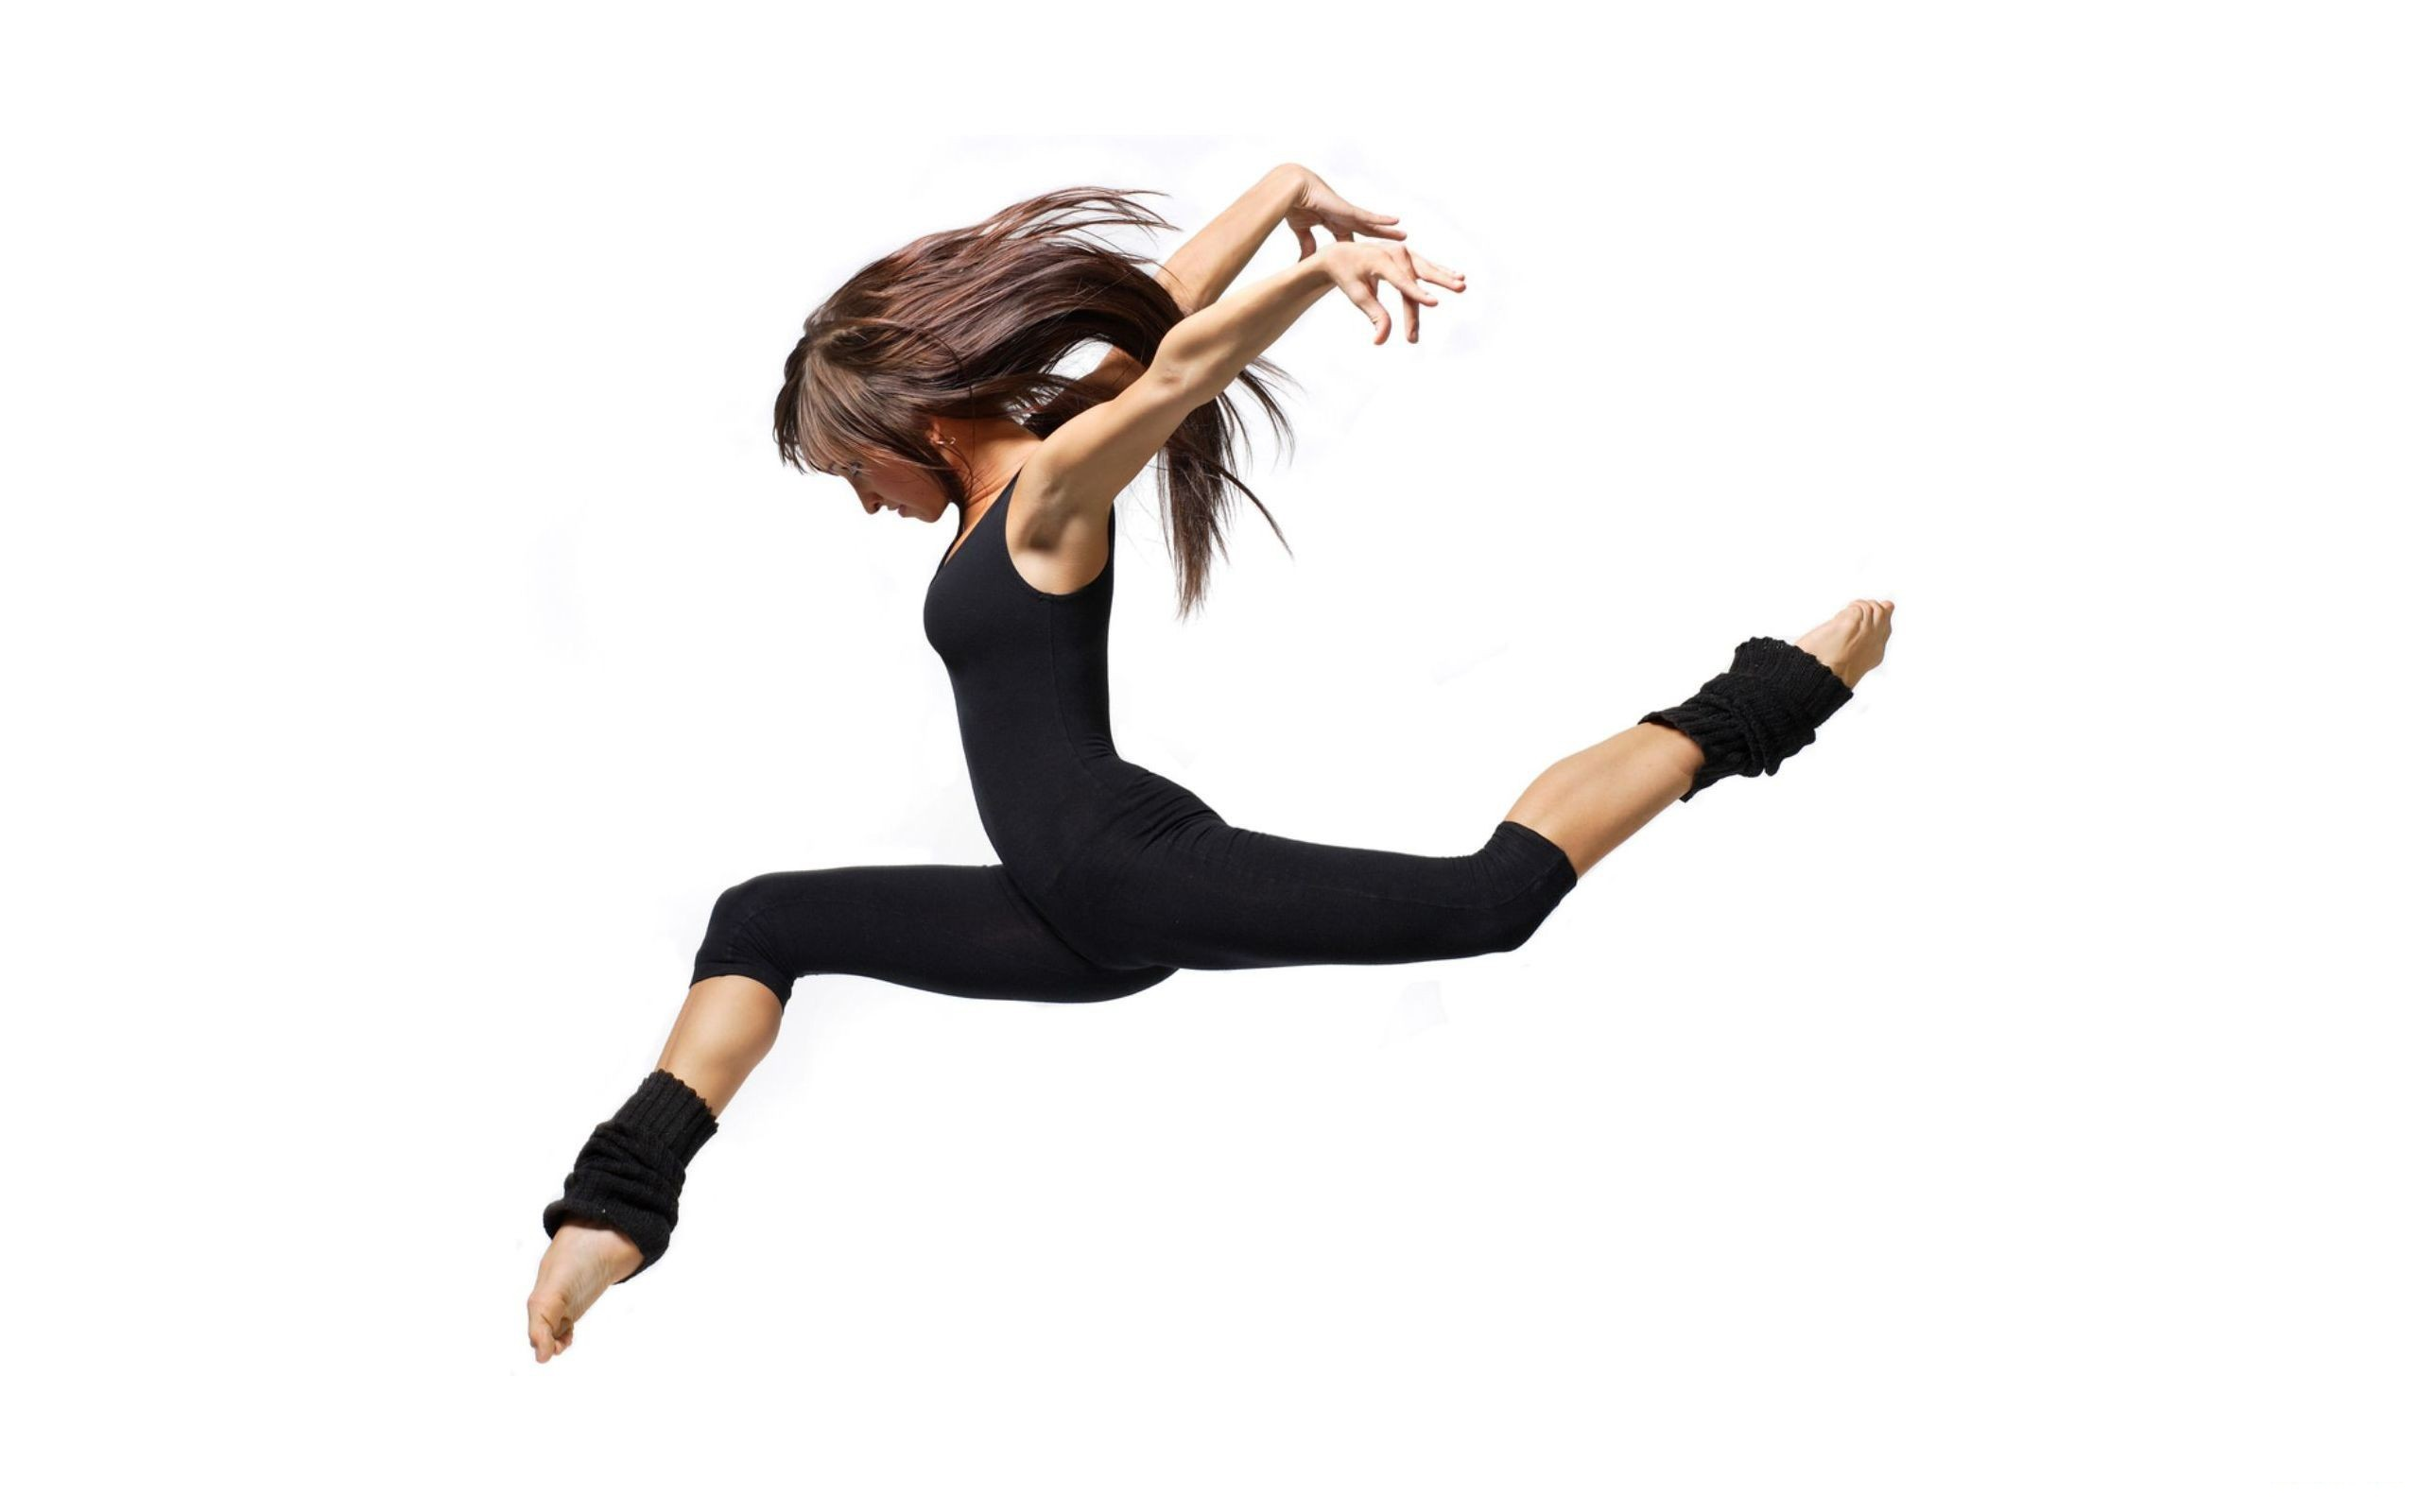 Shawn Johnson's the body department - What Dance Style Are You?